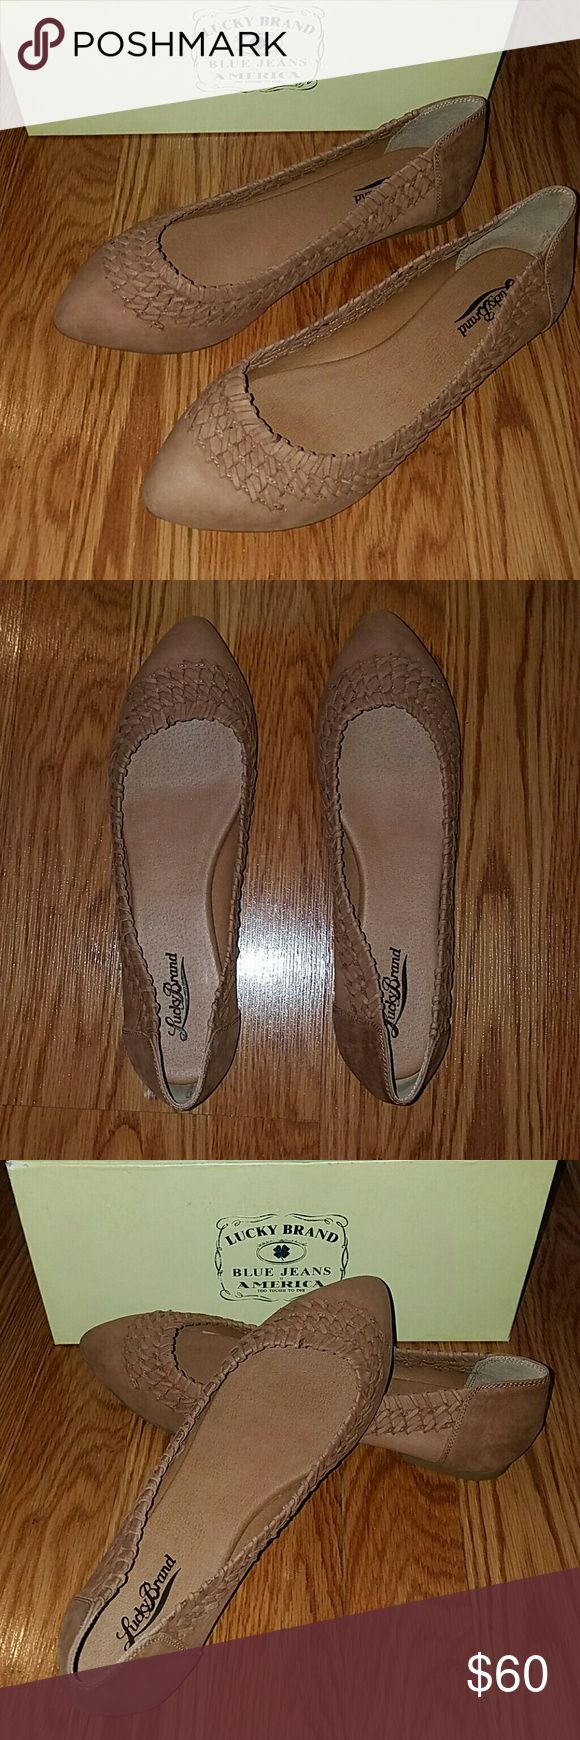 Lucky Brand flats Genuine nubuck leather flats with beautiful weave pattern and almond toe shape in a rich cognac color Lucky Brand Shoes Flats & Loafers